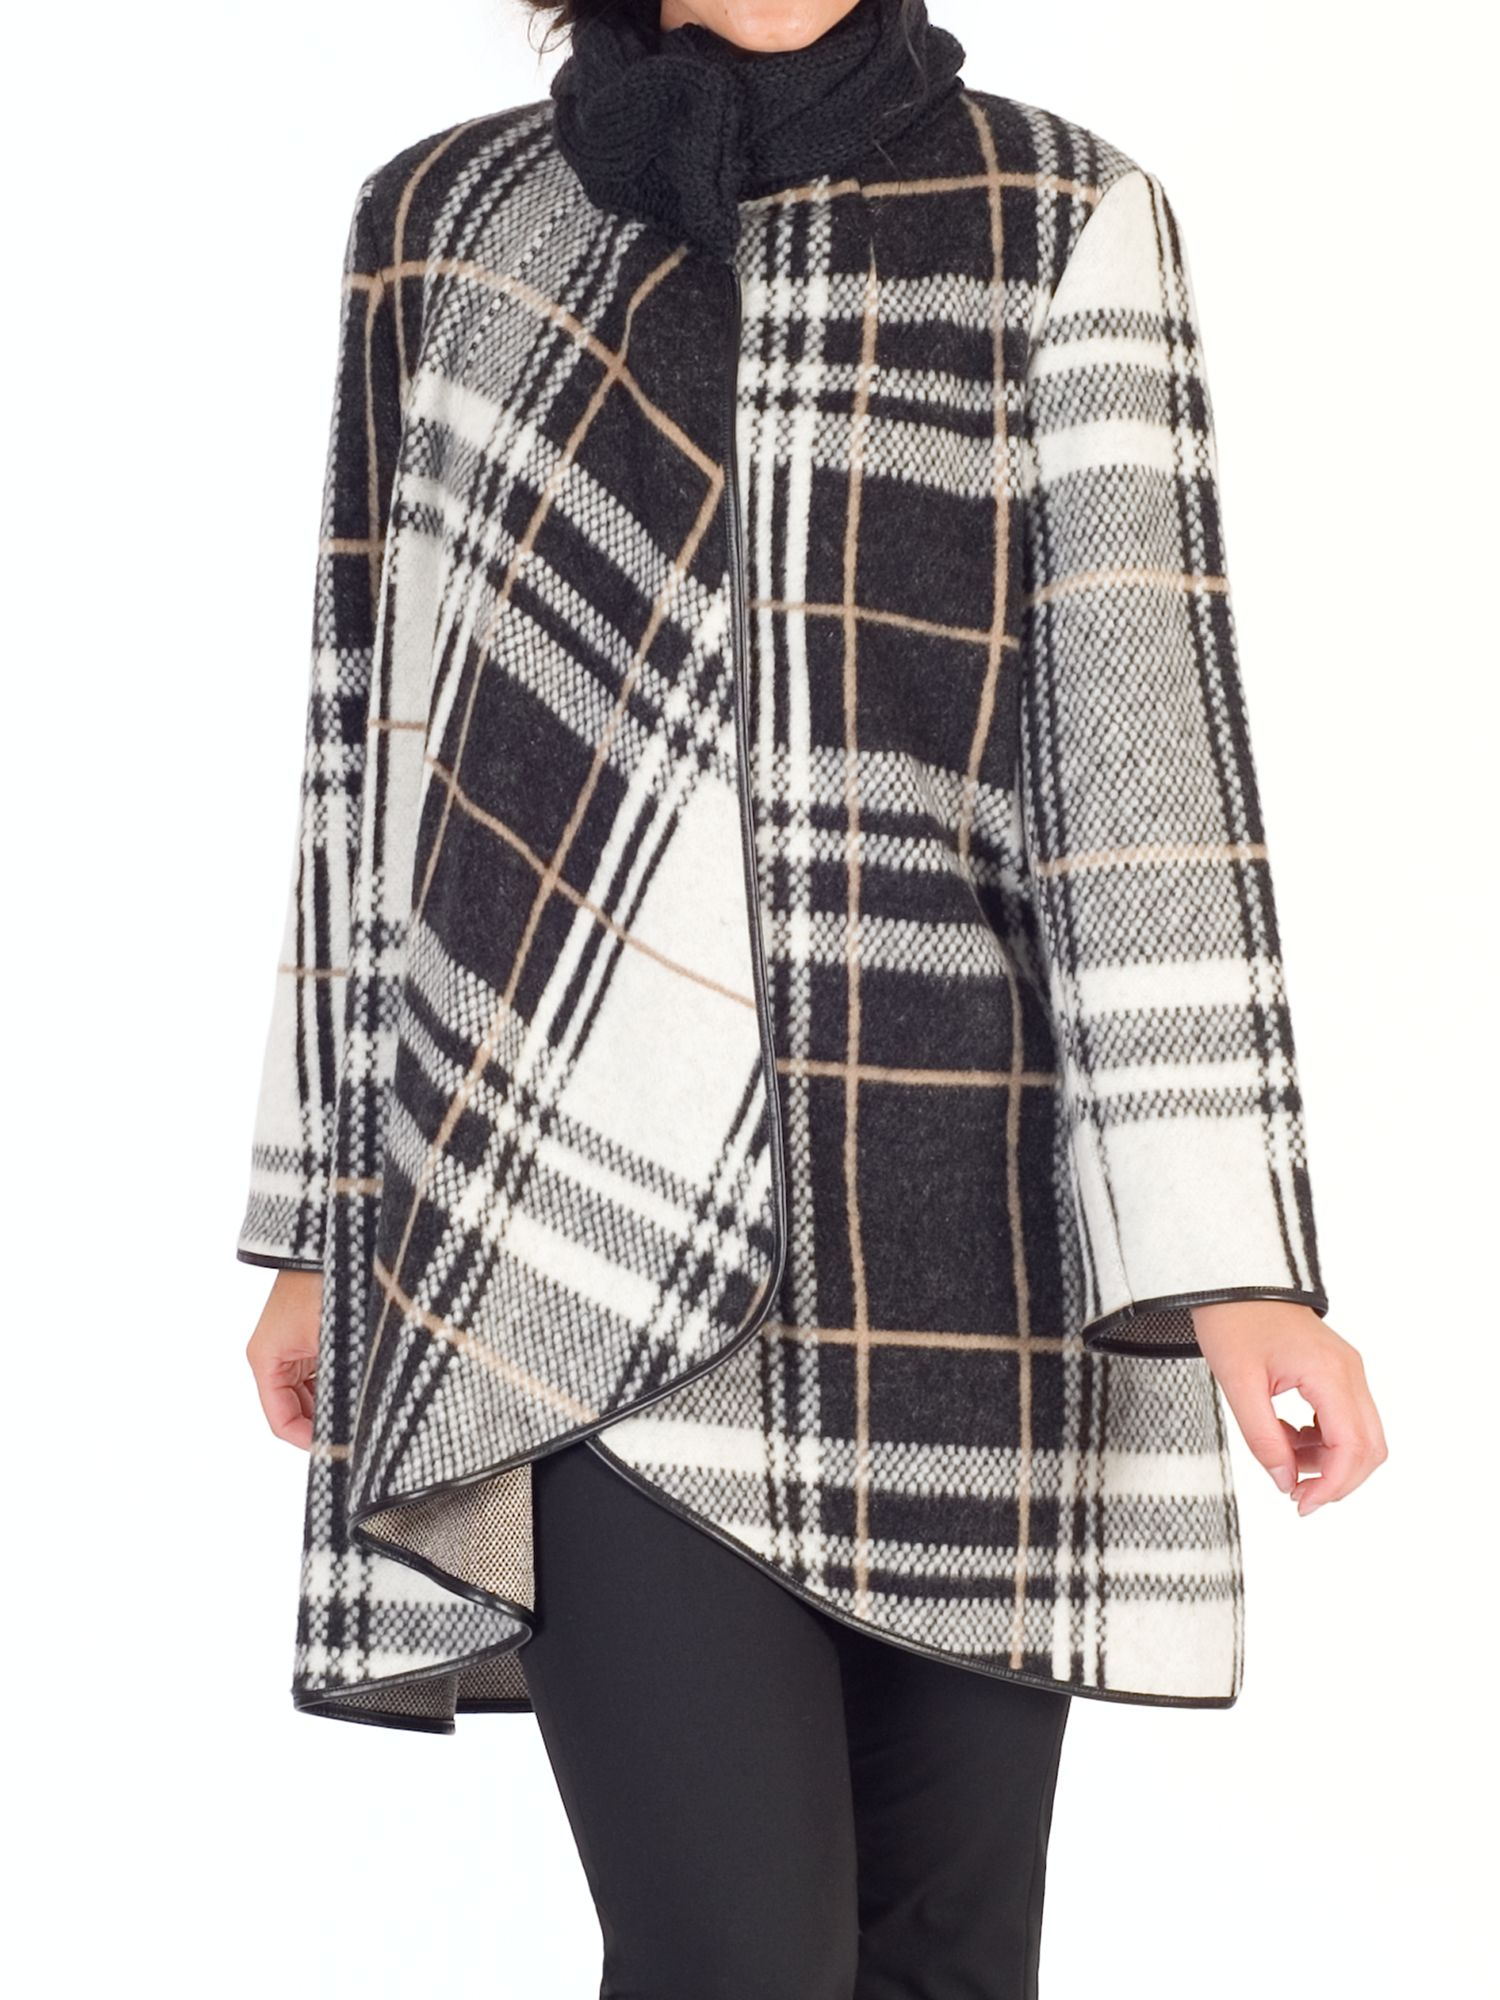 Chesca Chesca Camel Check Coat, Monochrome/Camel